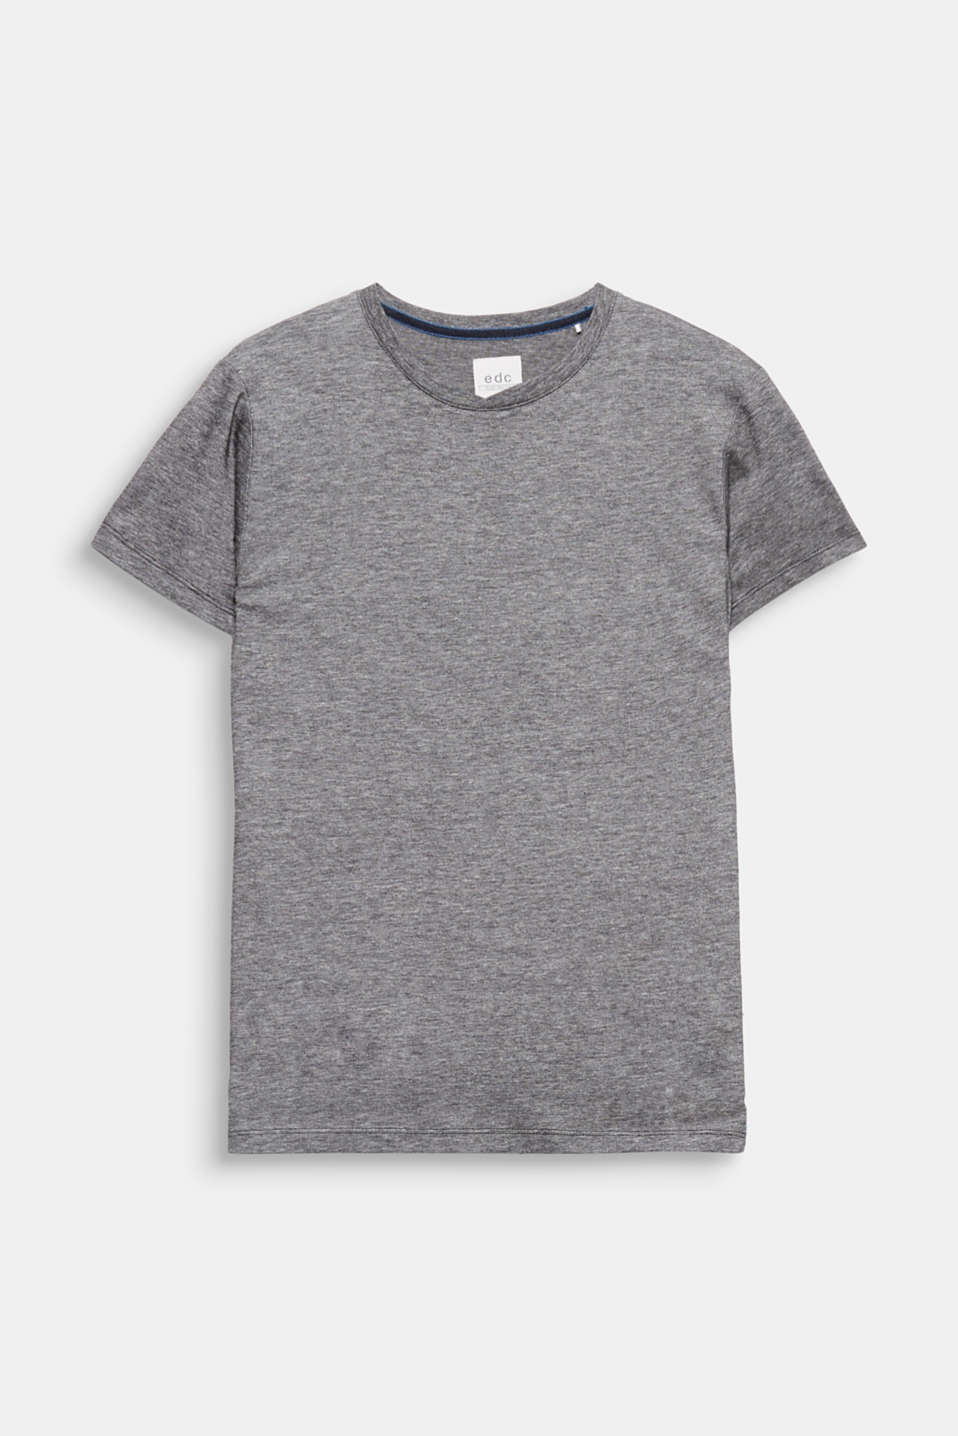 We love texture! The two-tone piqué gives this T-shirt an exciting texture.